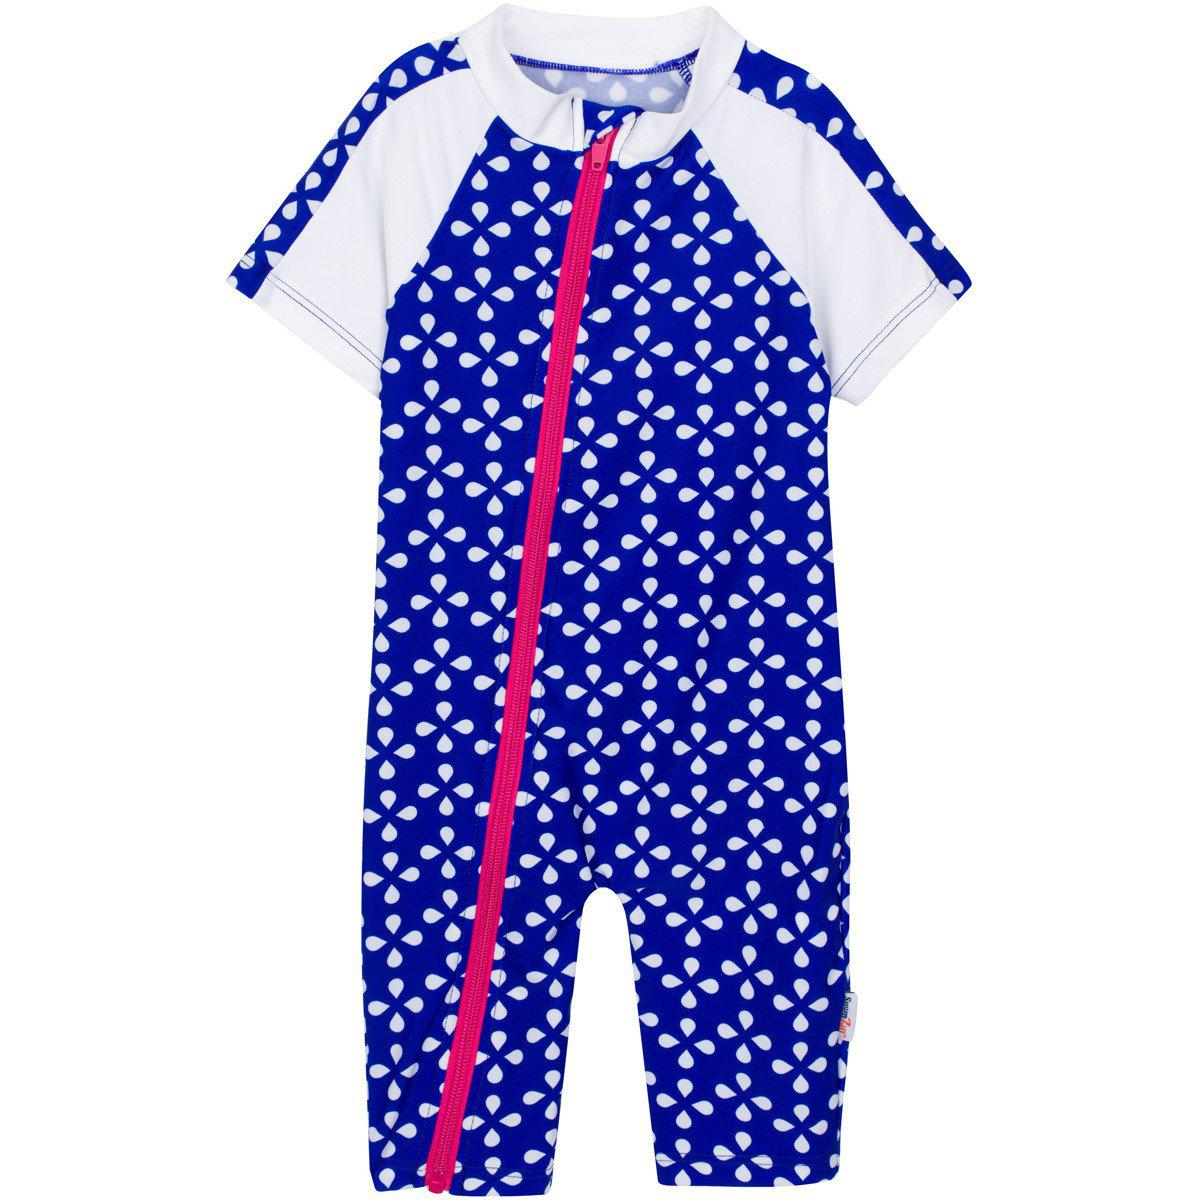 "Baby Girl Short Sleeve Sunsuit Swimsuit with UPF 50+ UV Sun Protection- Blue 1 Piece Romper ""Flower Power"""